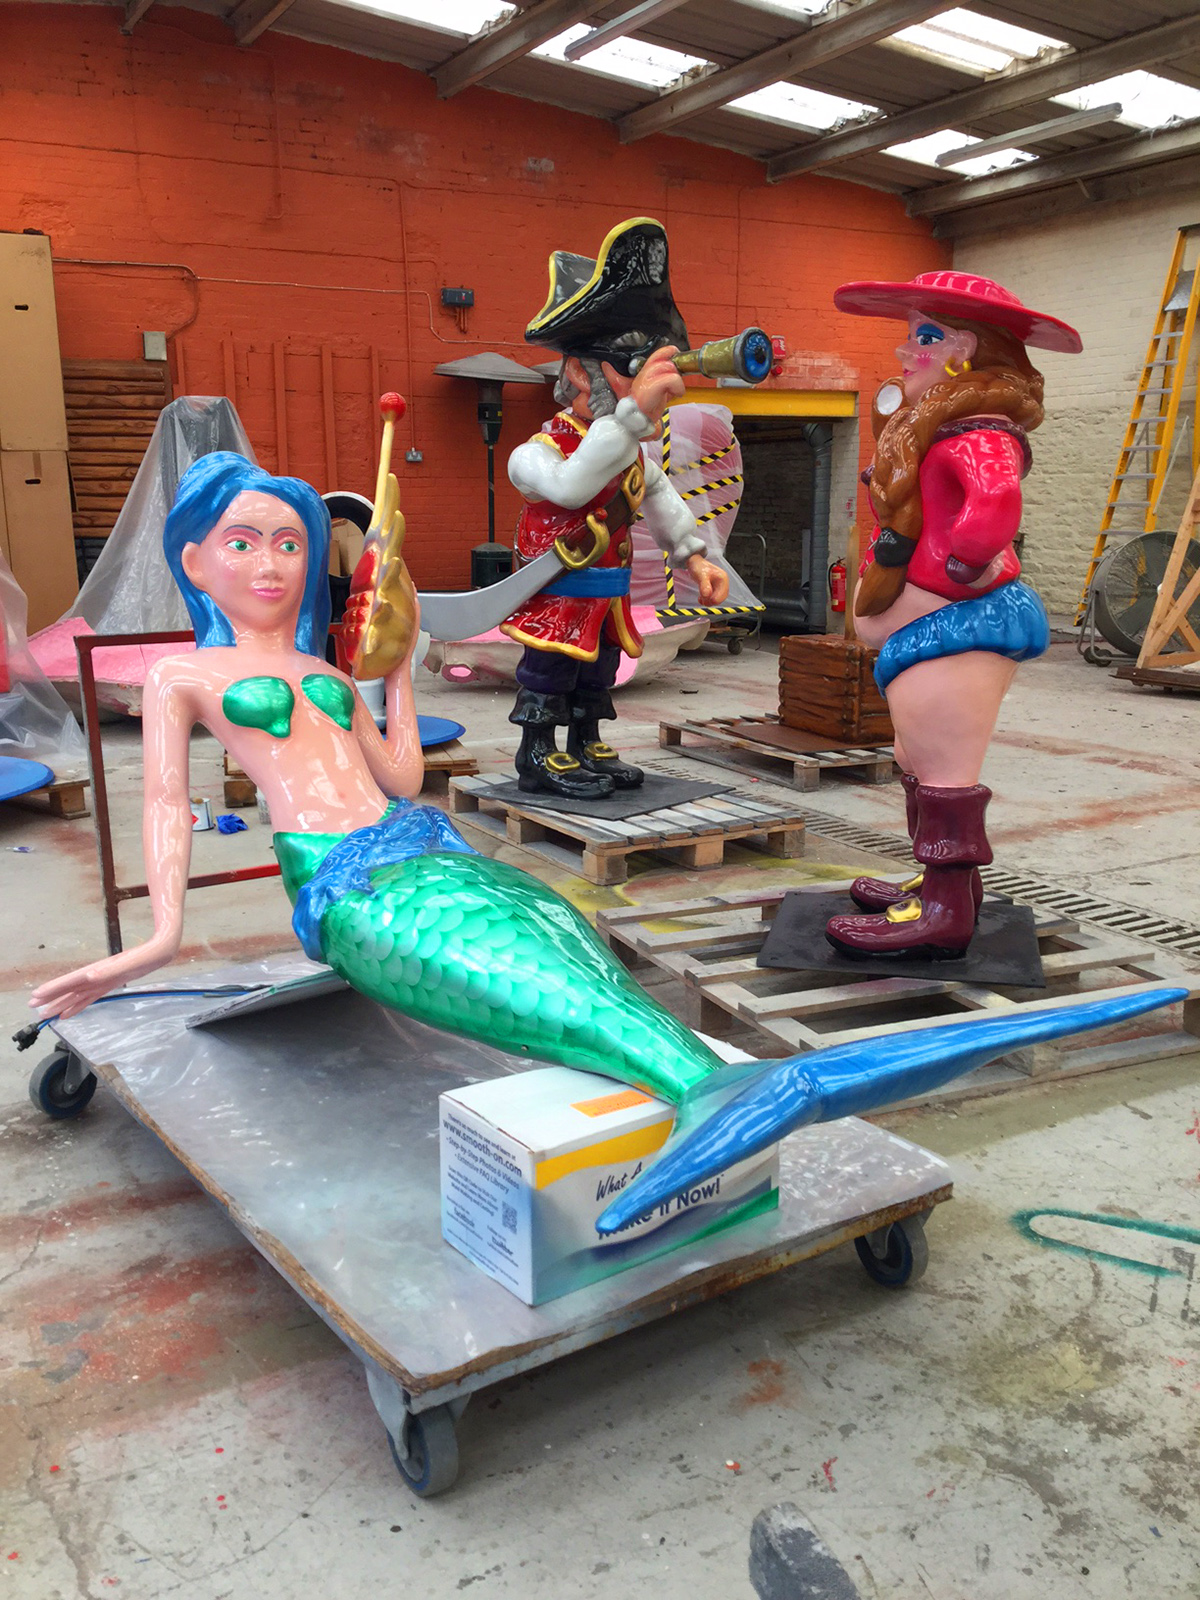 Mermaid and Pirates in factory